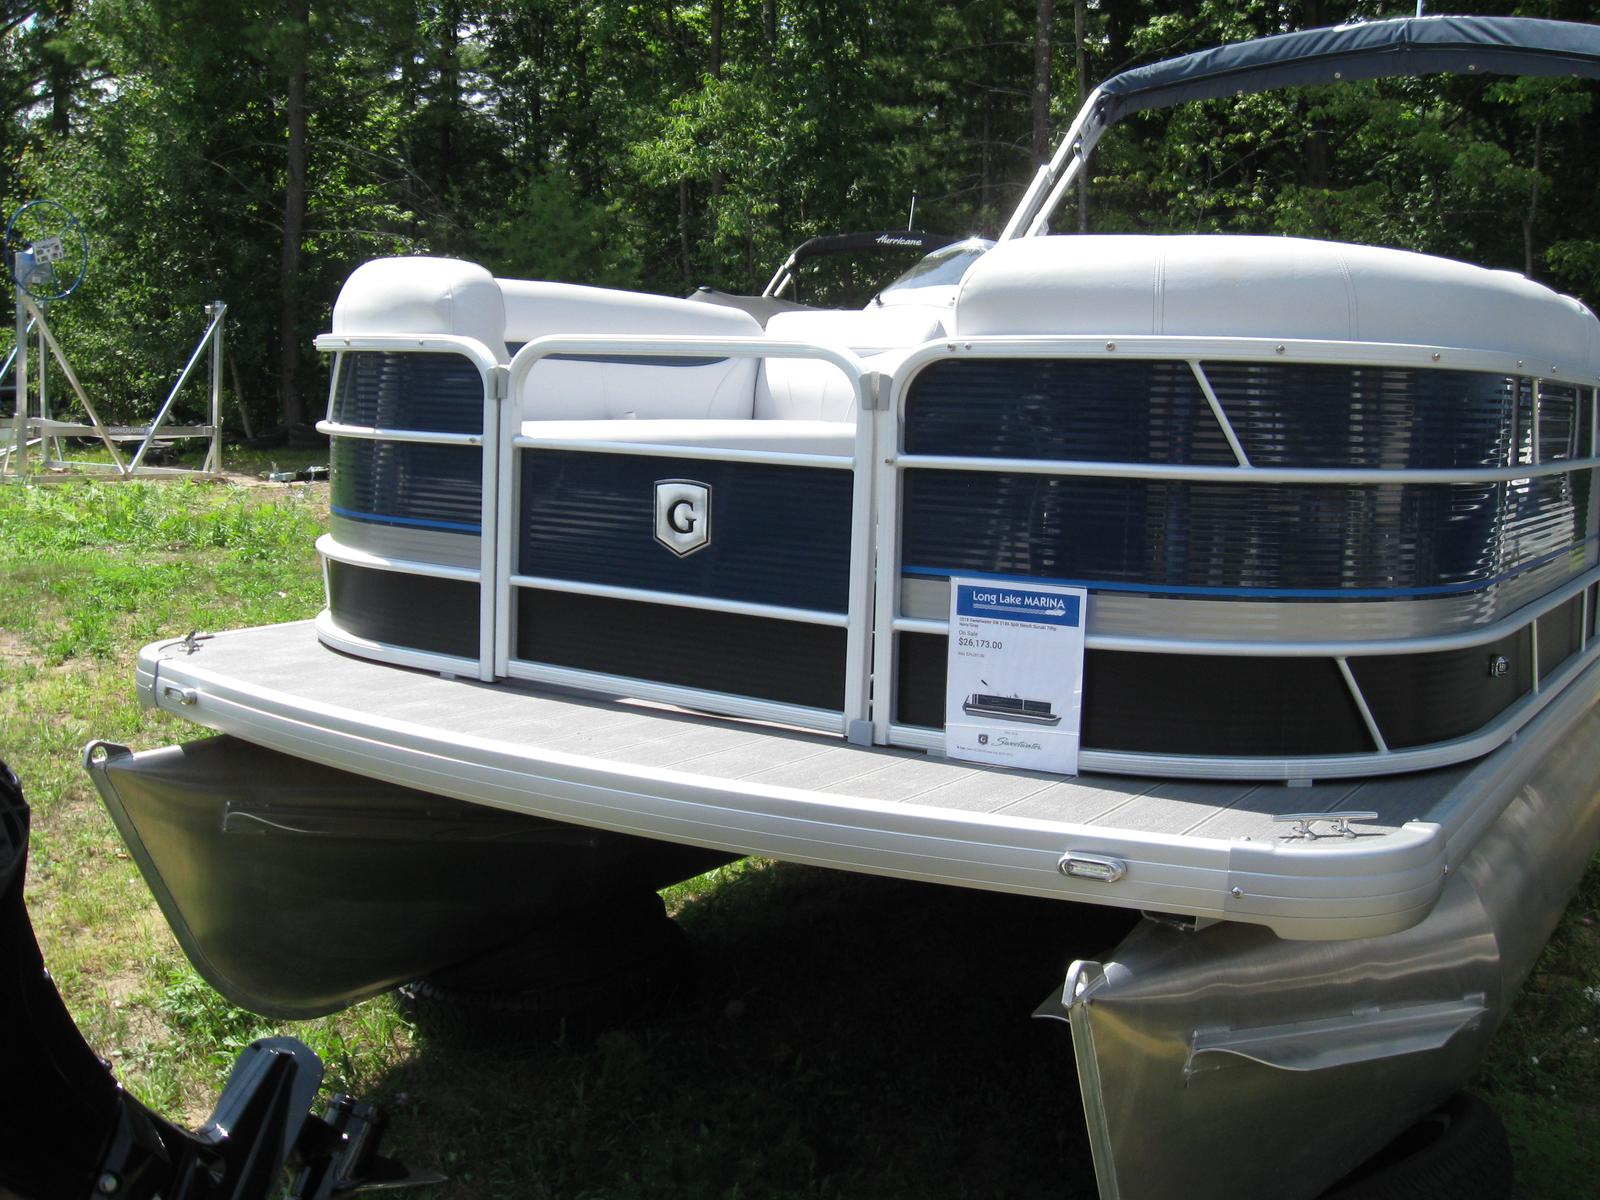 Pontoons Long Lake Marina Interlochen, MI (231) 276-9910